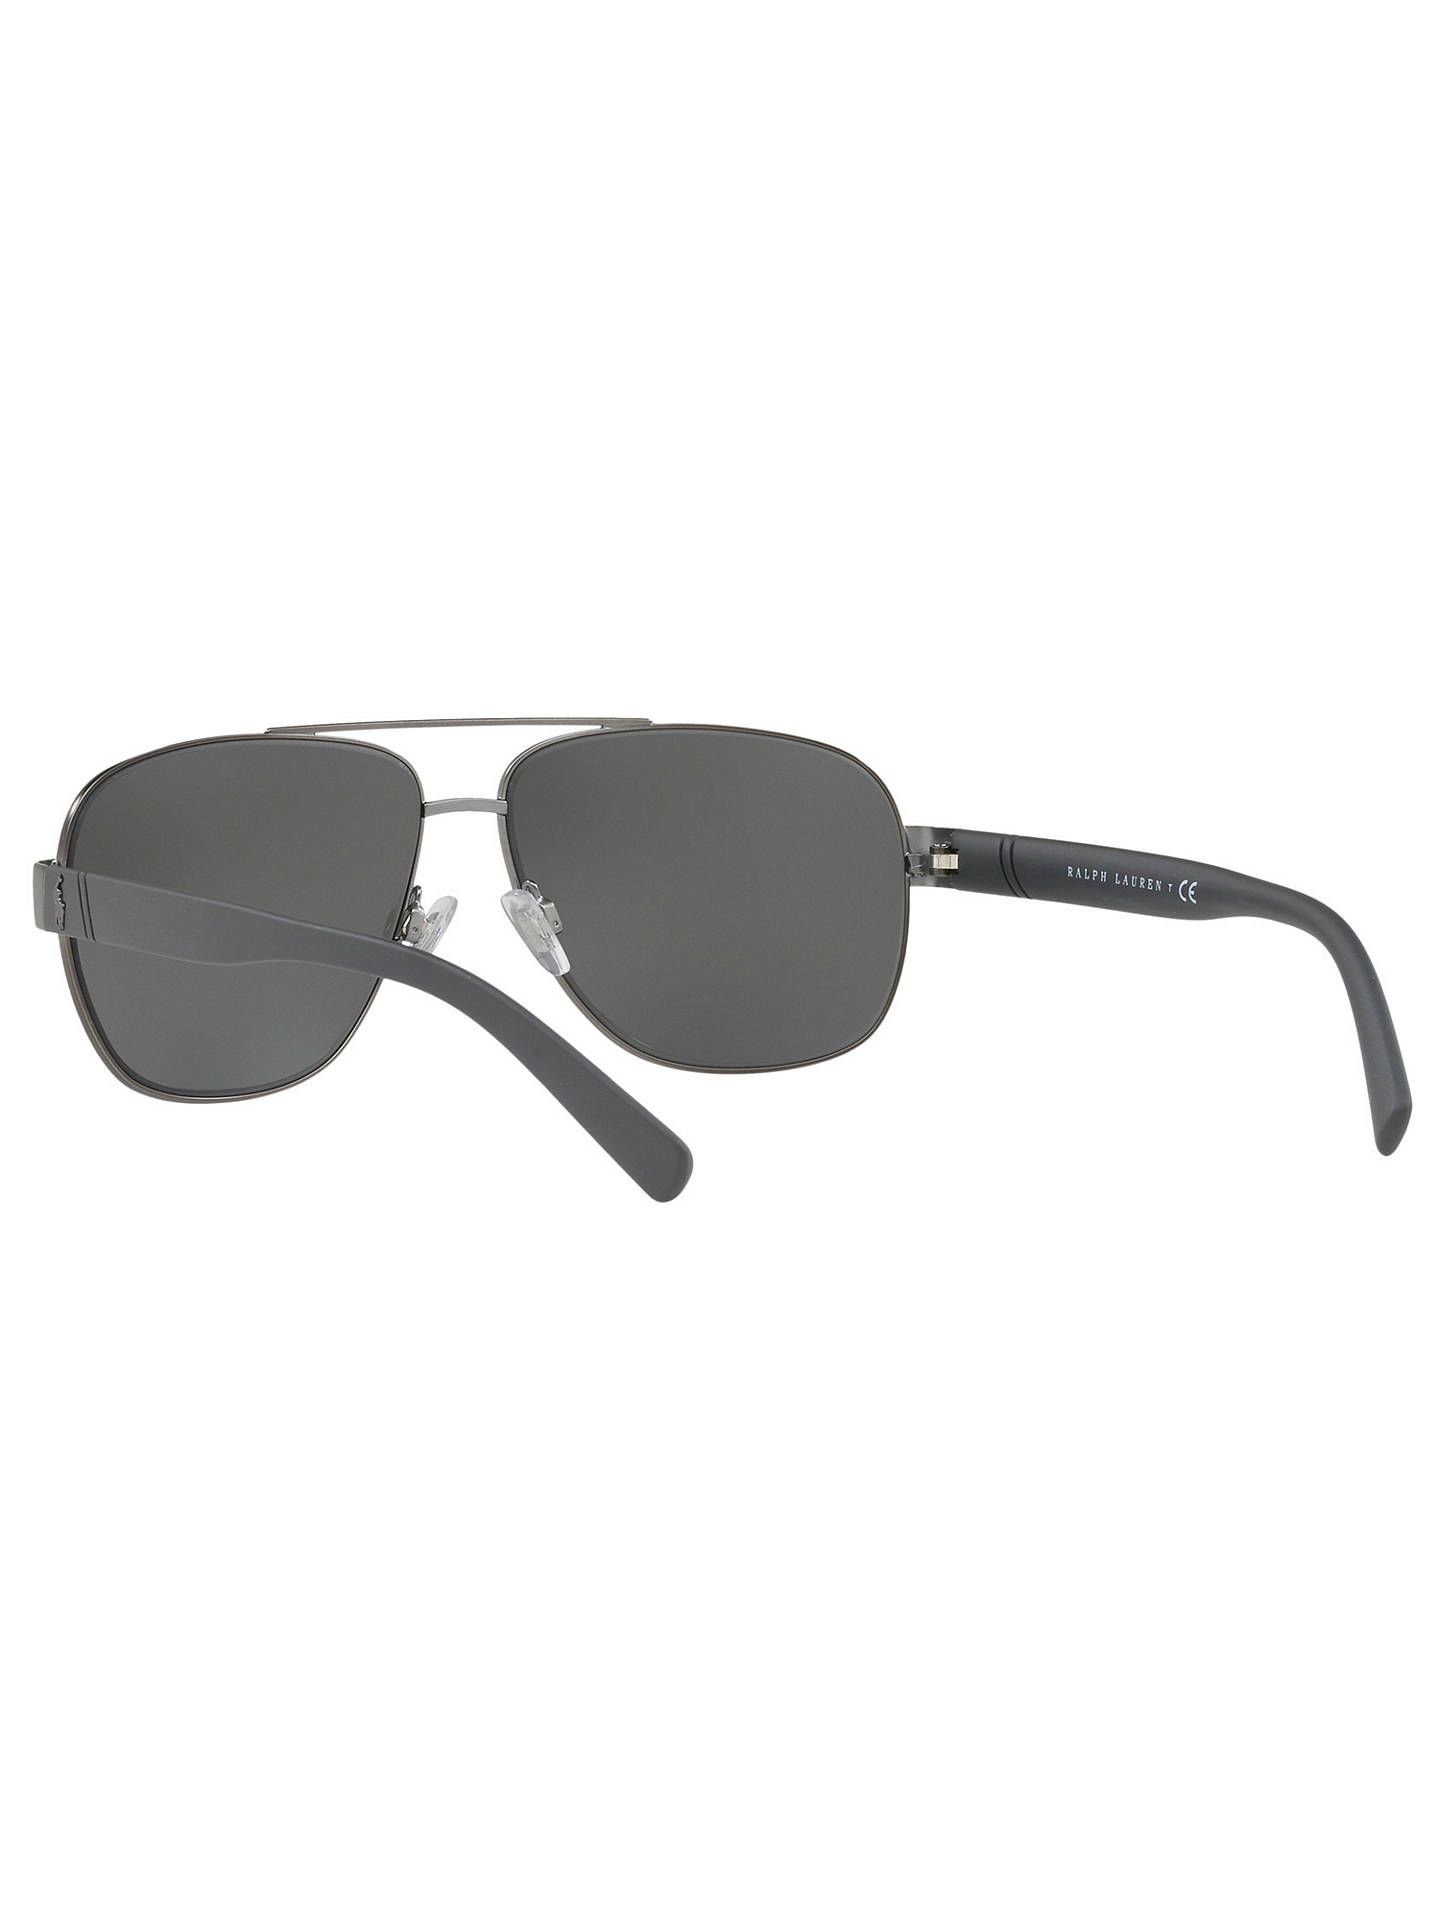 BuyPolo Ralph Lauren PH3110 Men's Aviator Sunglasses, Charcoal/Mirror Silver Online at johnlewis.com